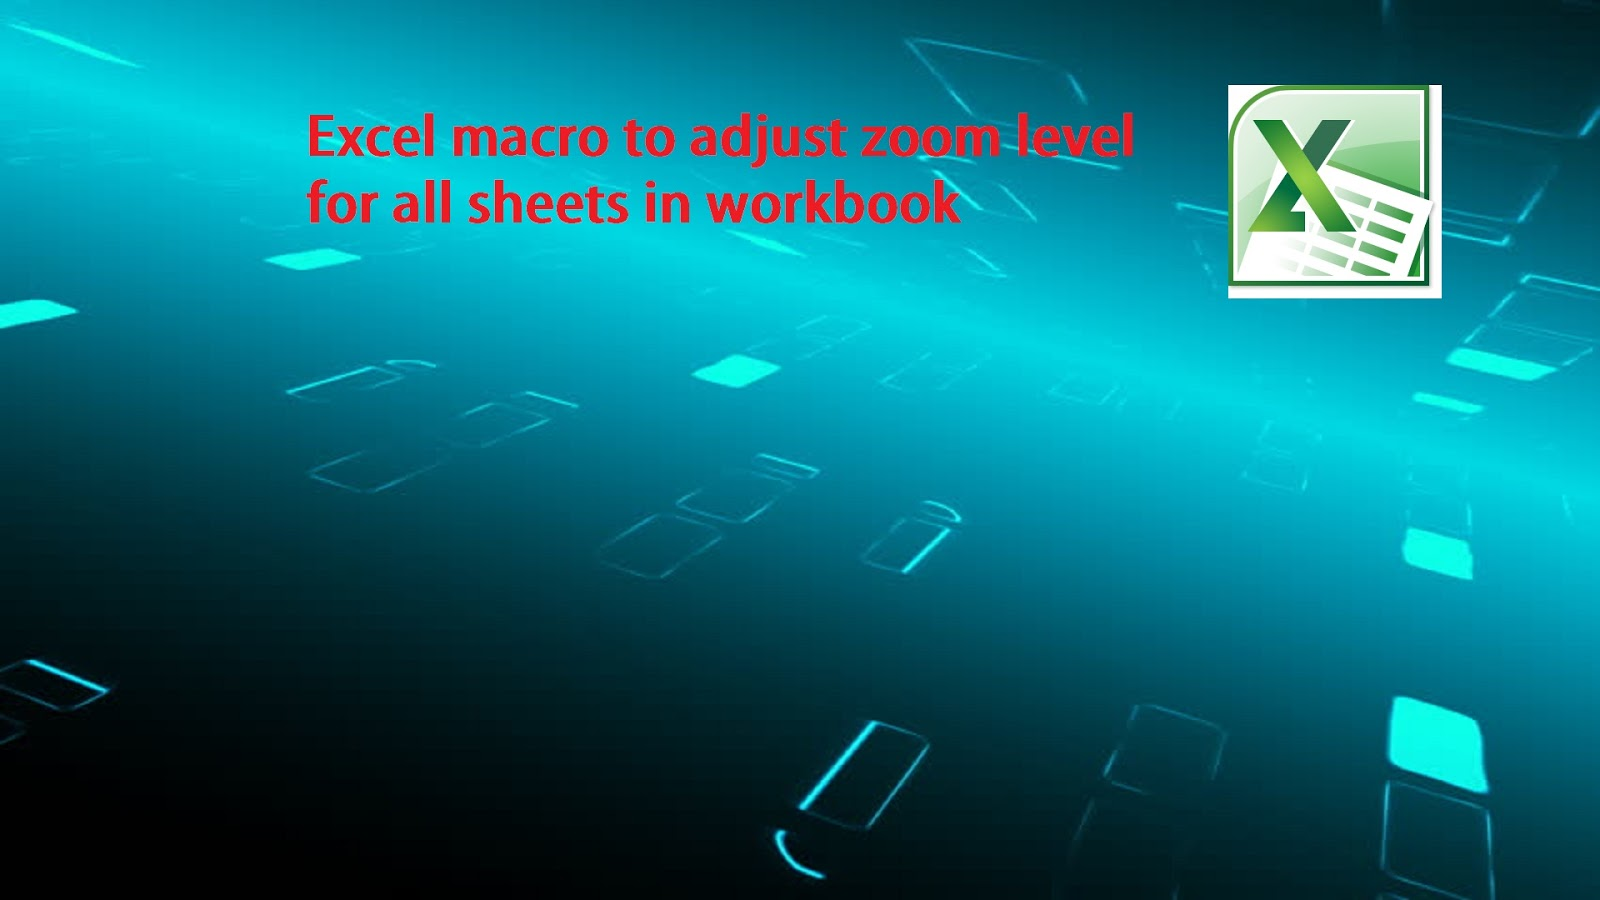 Excel Macro To Set Zoom Level For All Sheets In Workbook